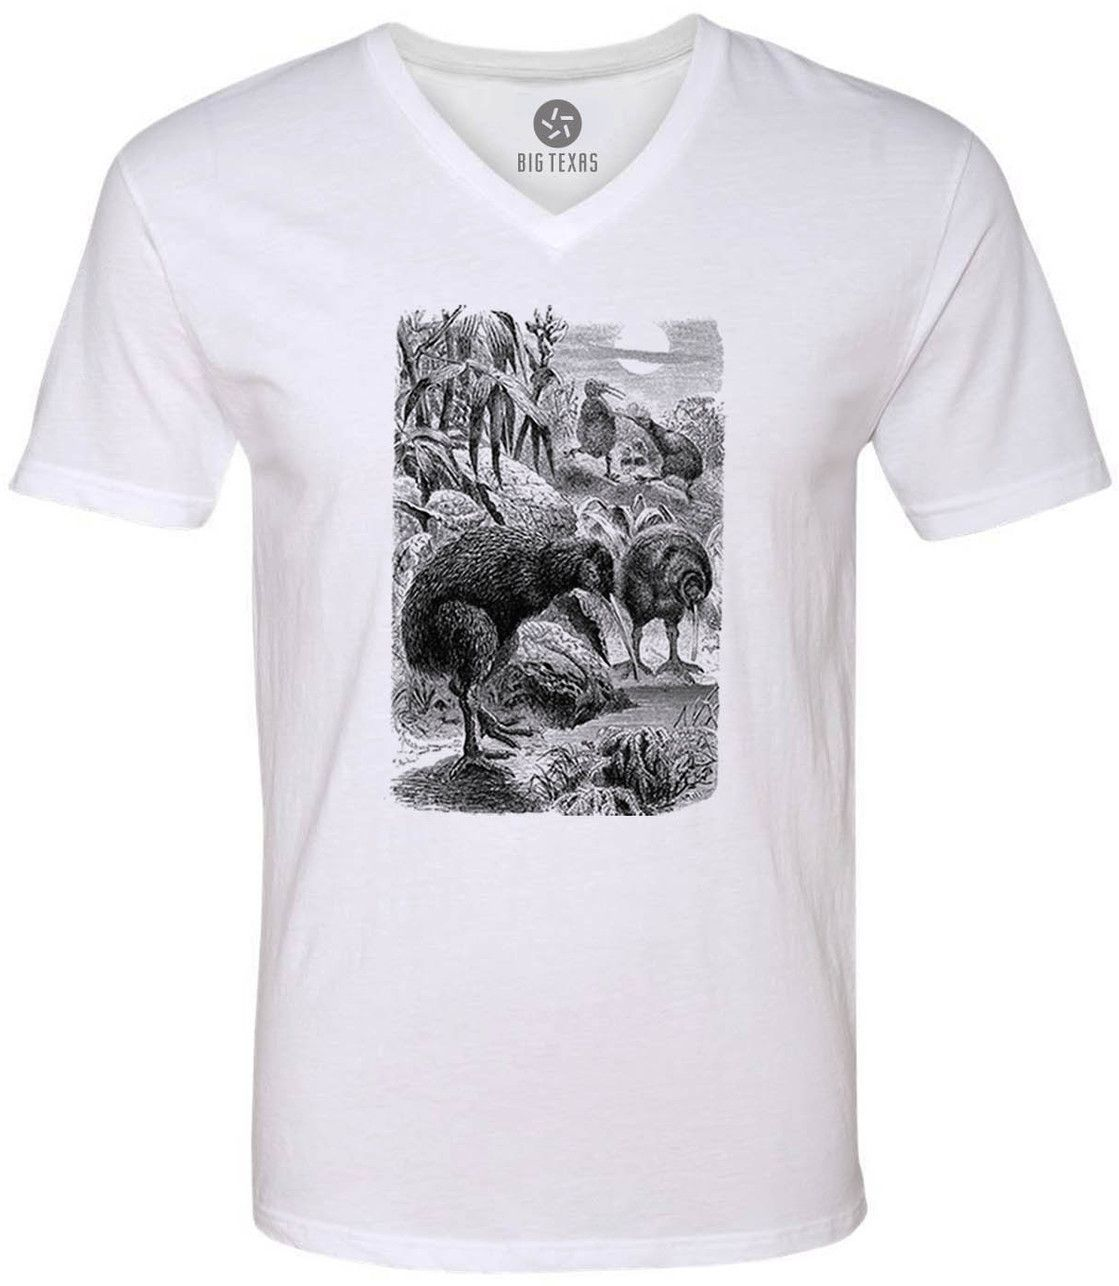 Wild Kiwi Illustration (Black) Short-Sleeve V-Neck T-Shirt